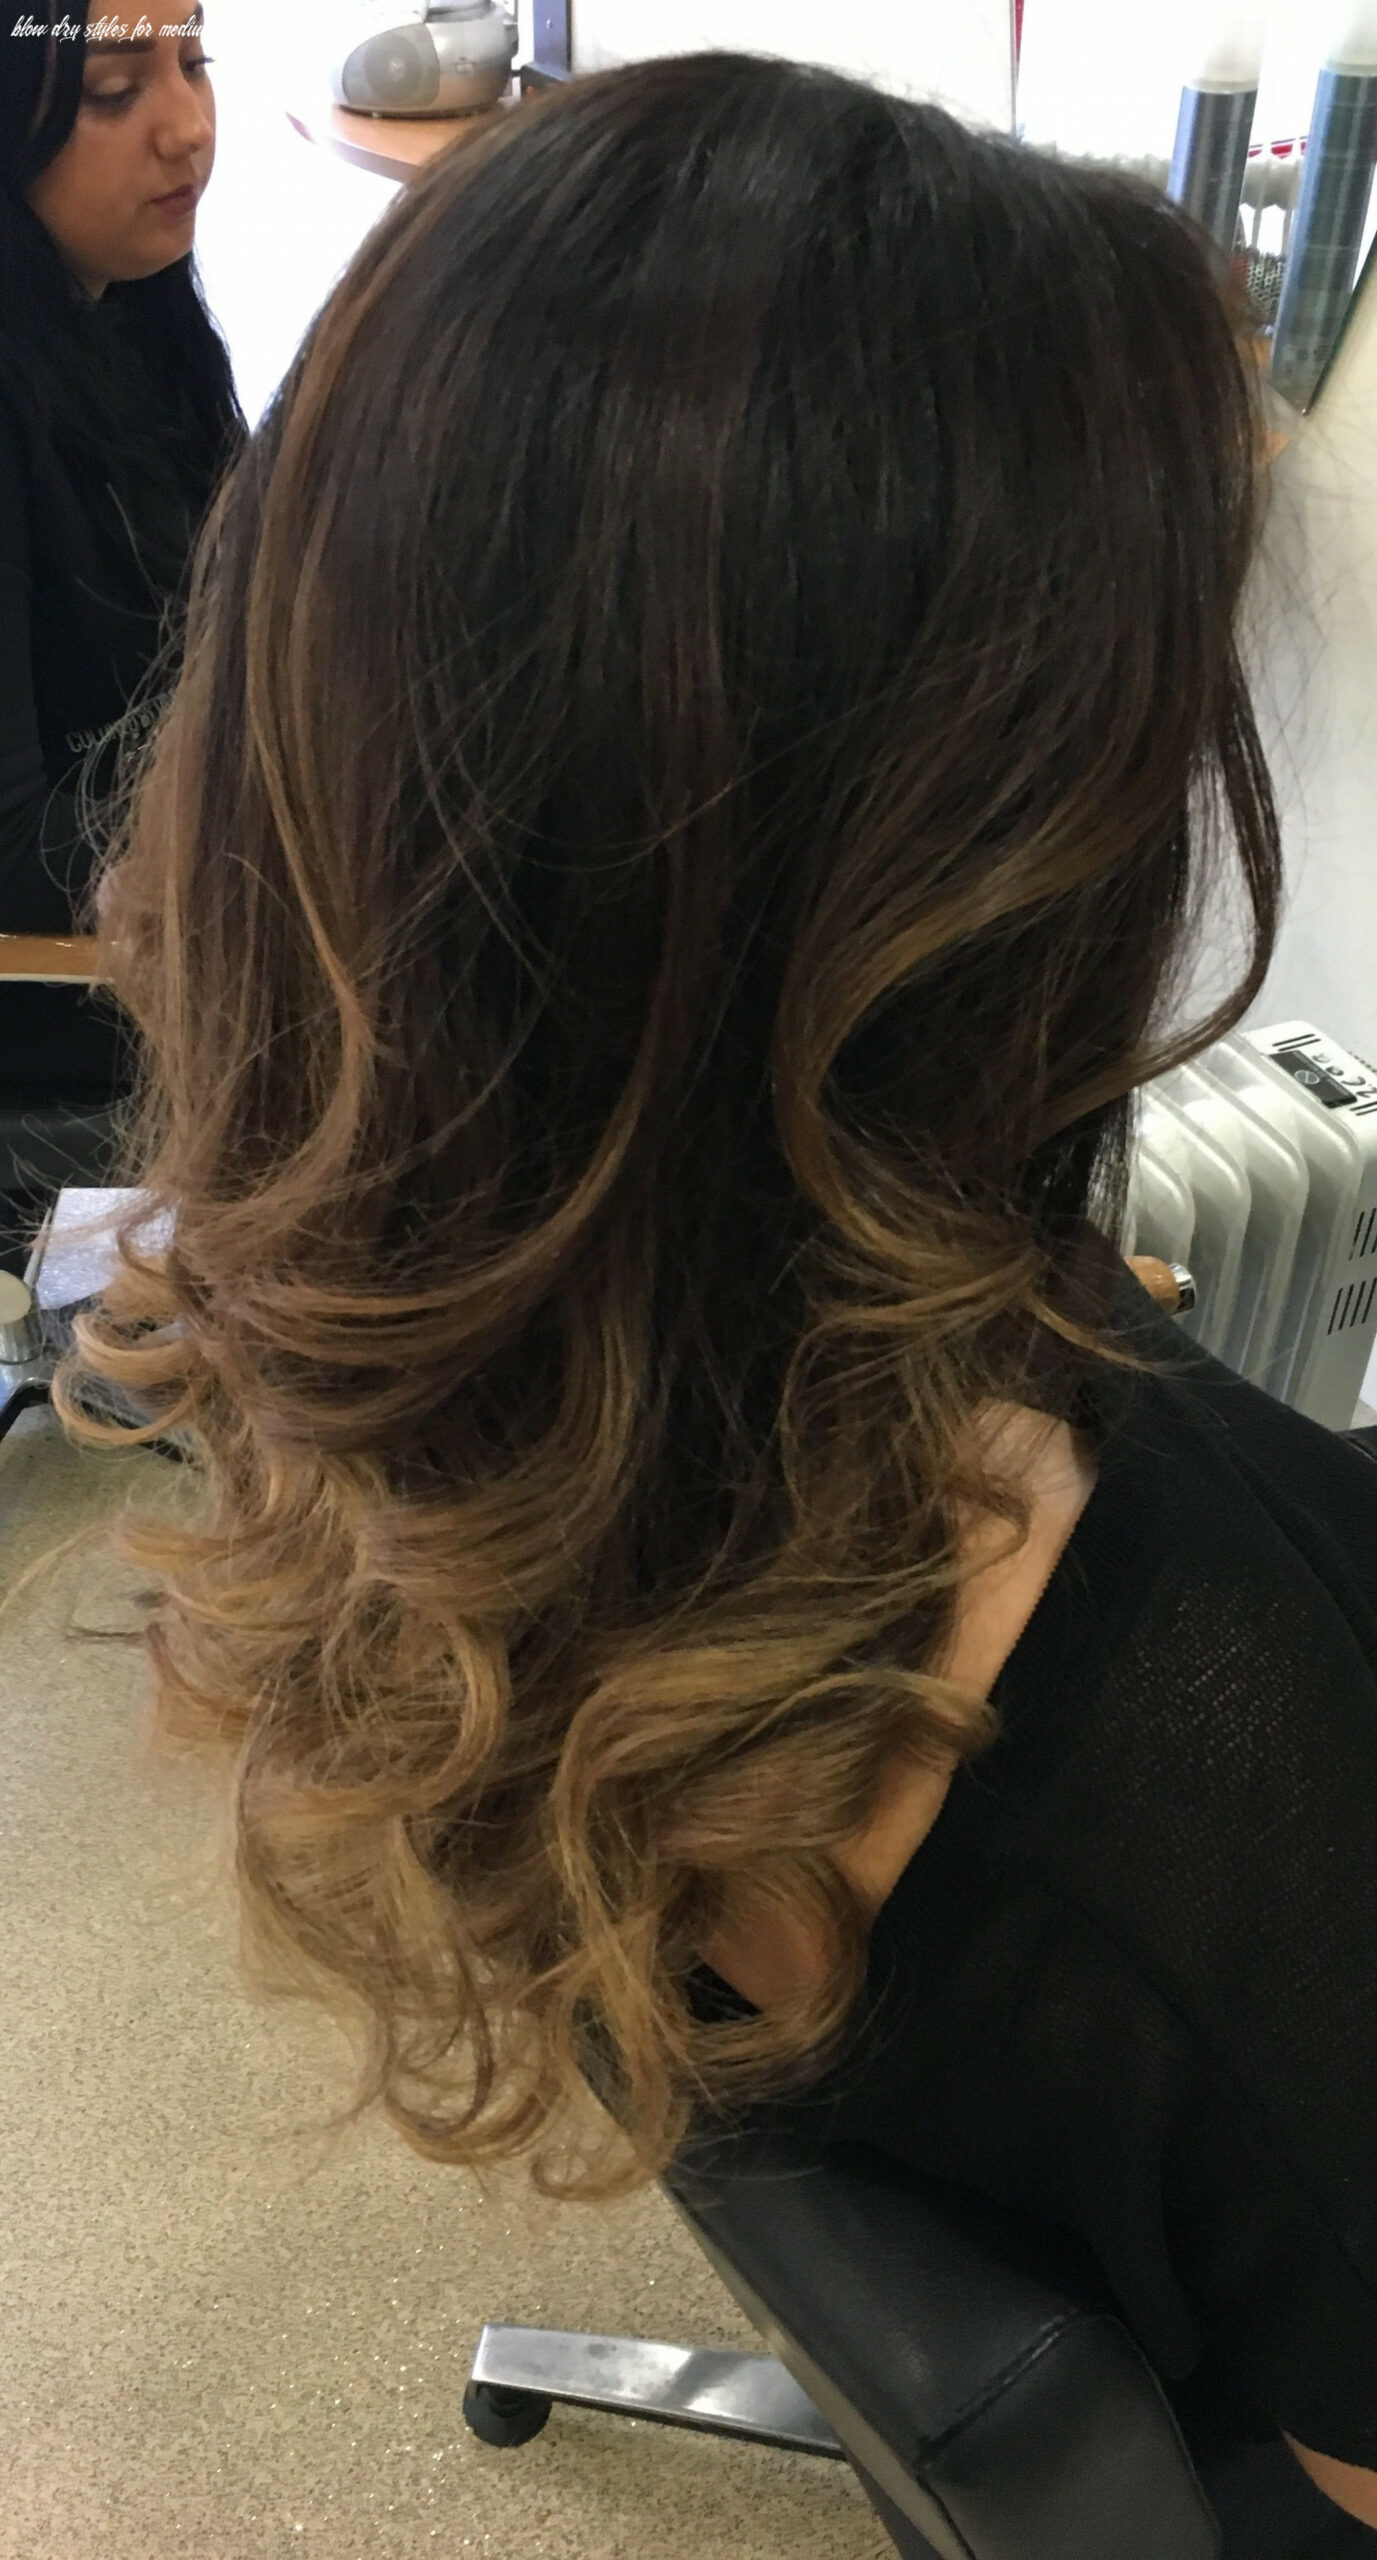 Curly blowdry | curly blowdry, blow dry hair, curly blowdry long hair blow dry styles for medium hair